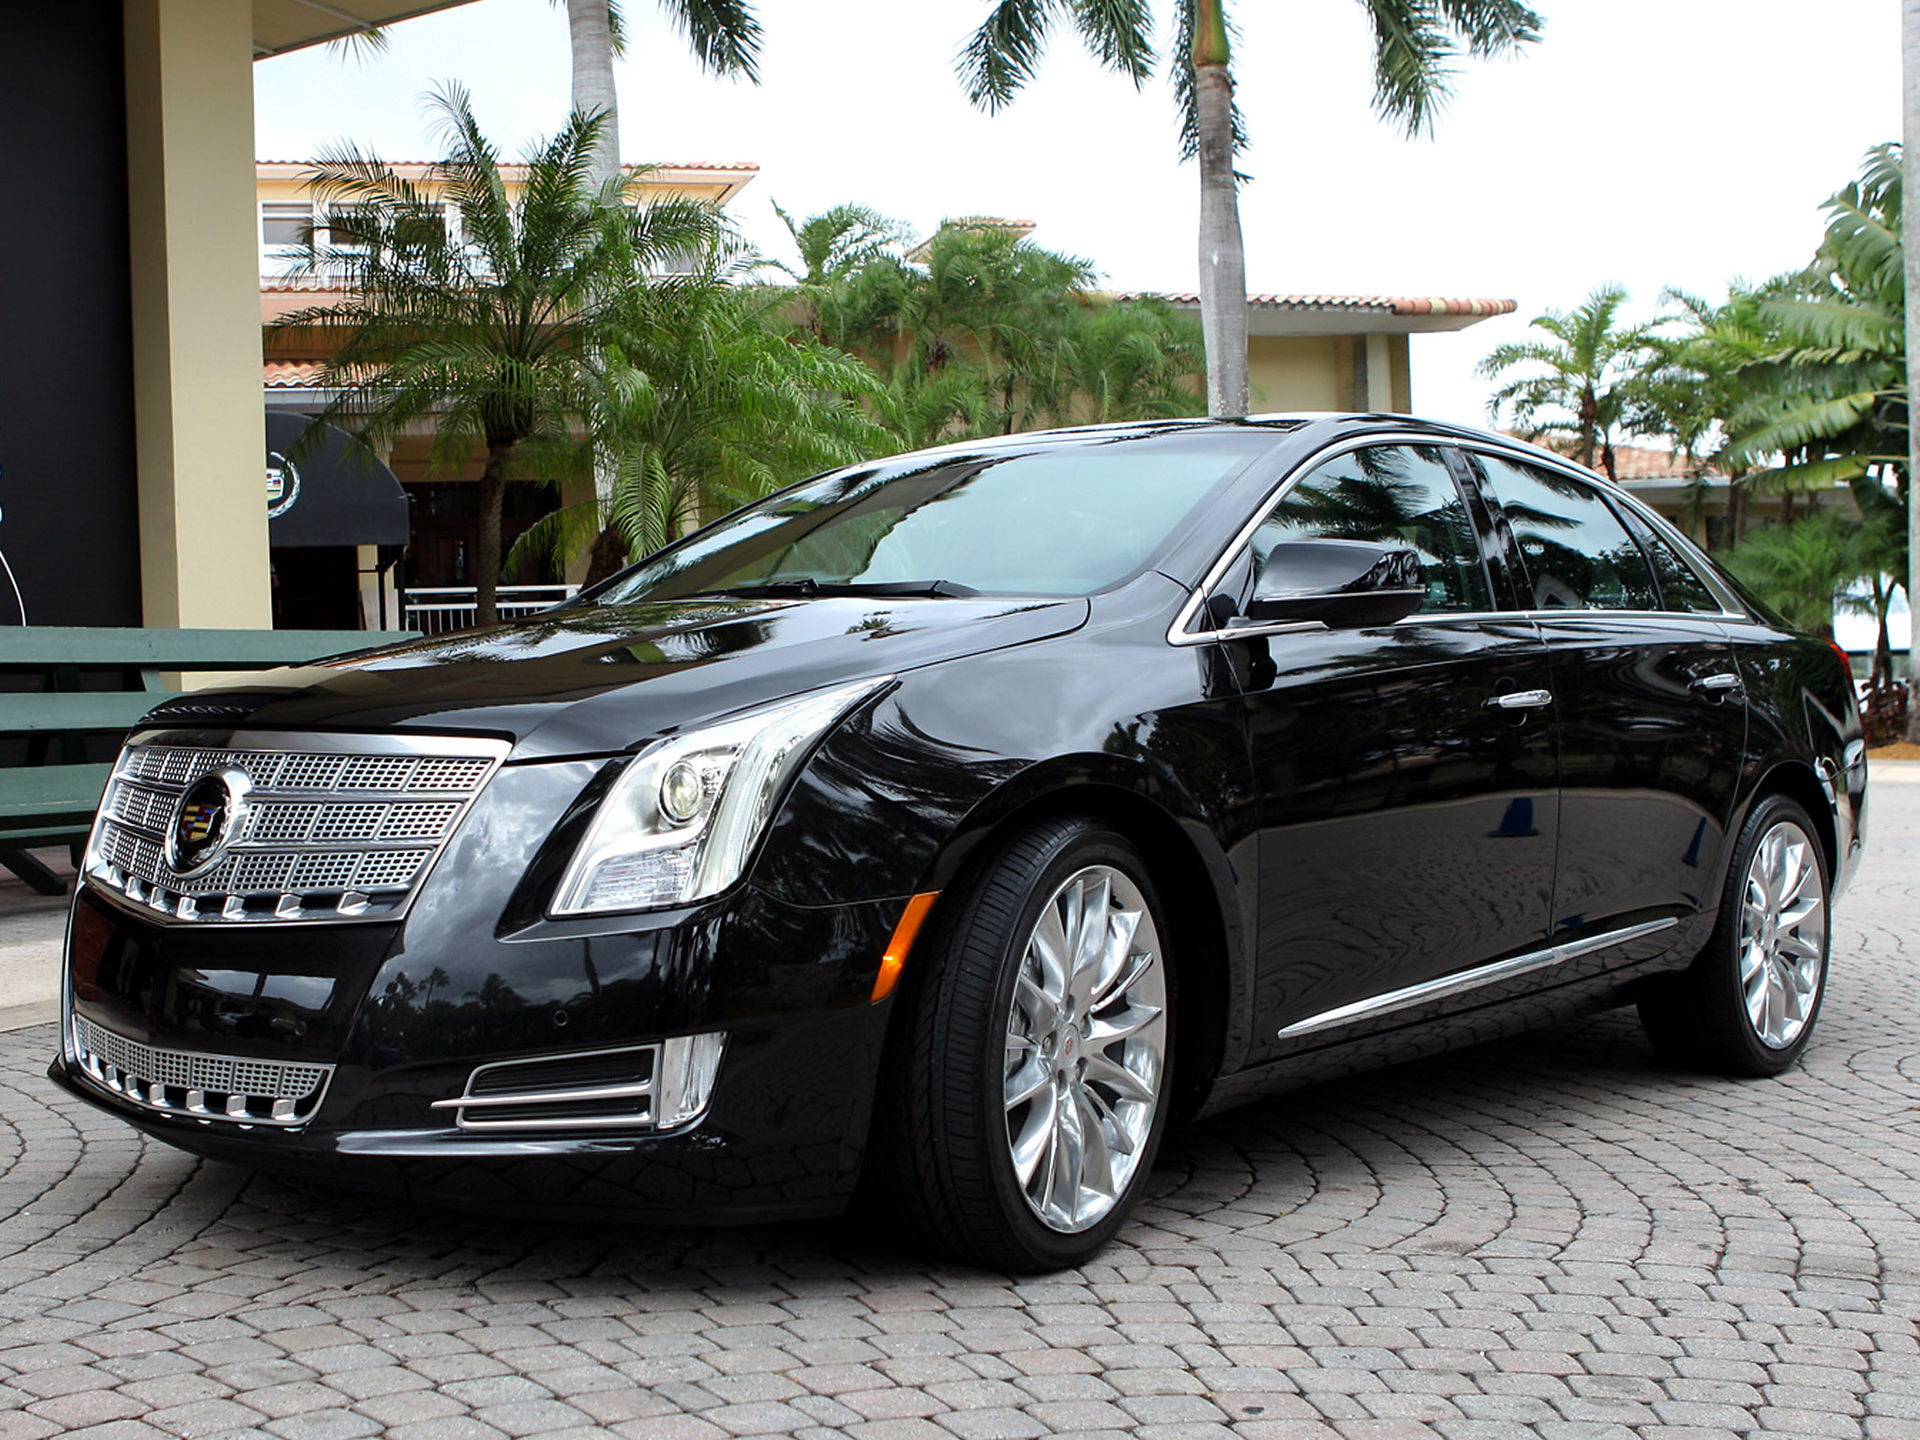 wallpapers cadillac cars 1920x1440 auto automobile